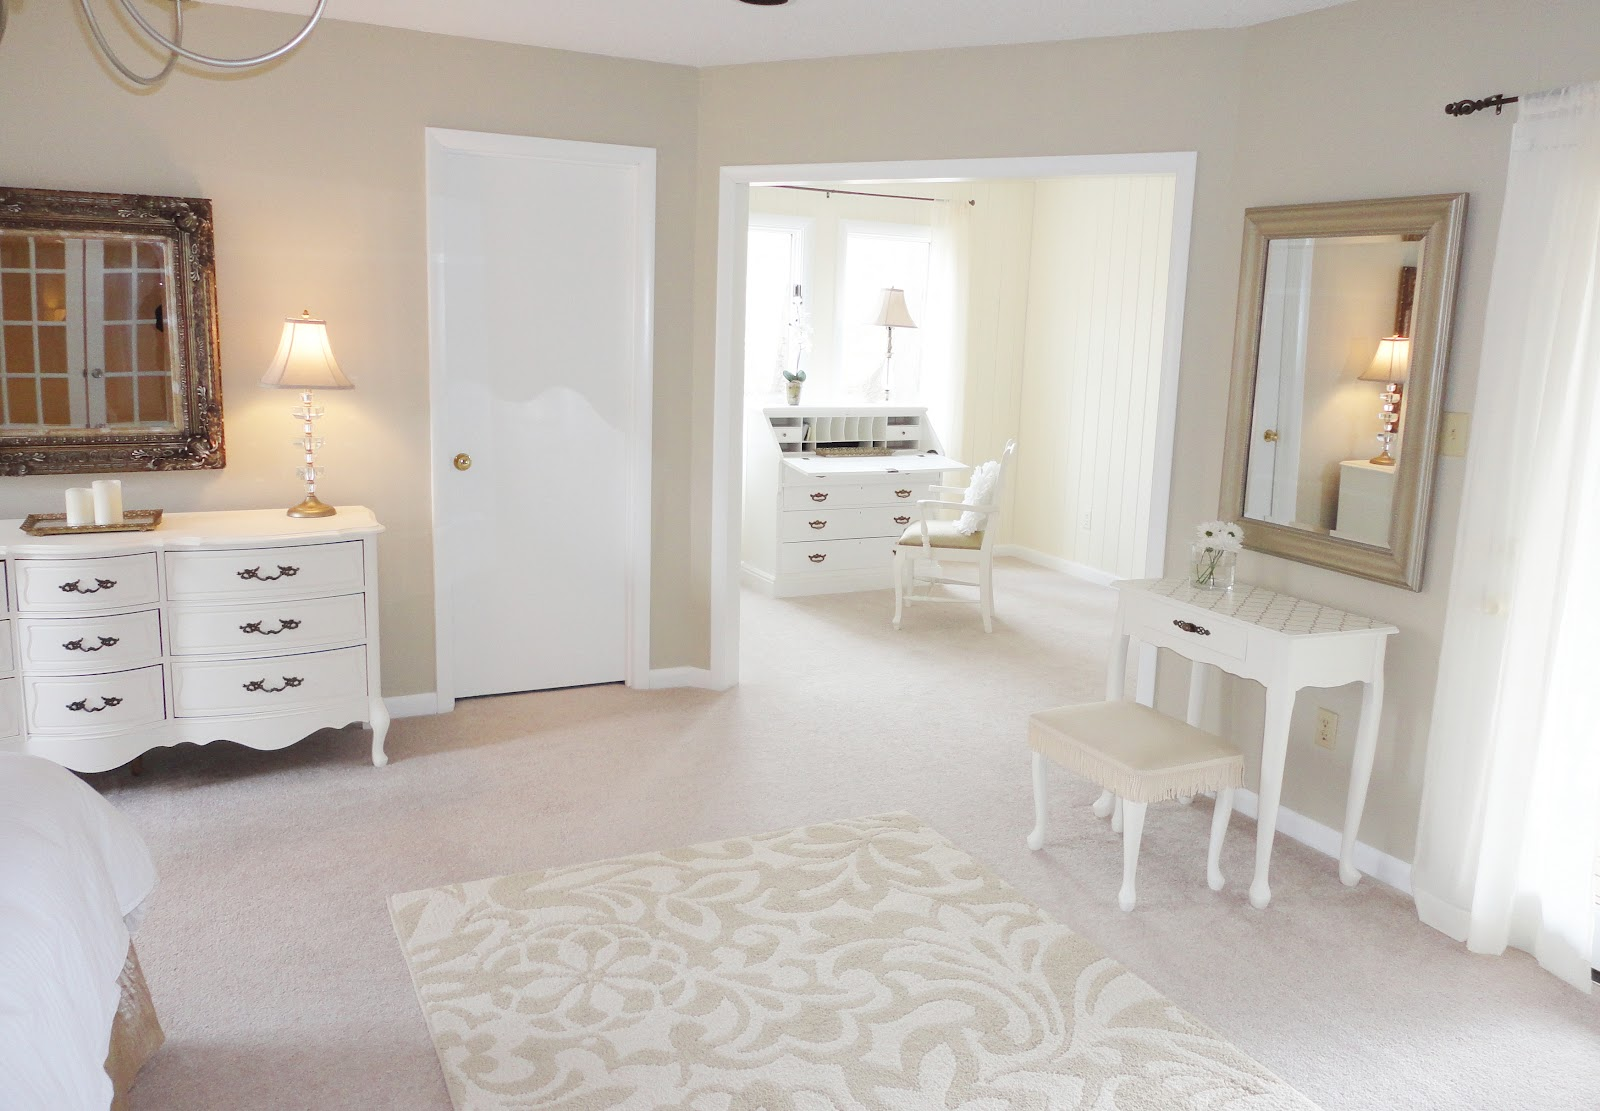 attic master bedroom decorating ideas - LiveLoveDIY How To Paint Furniture Stenciling